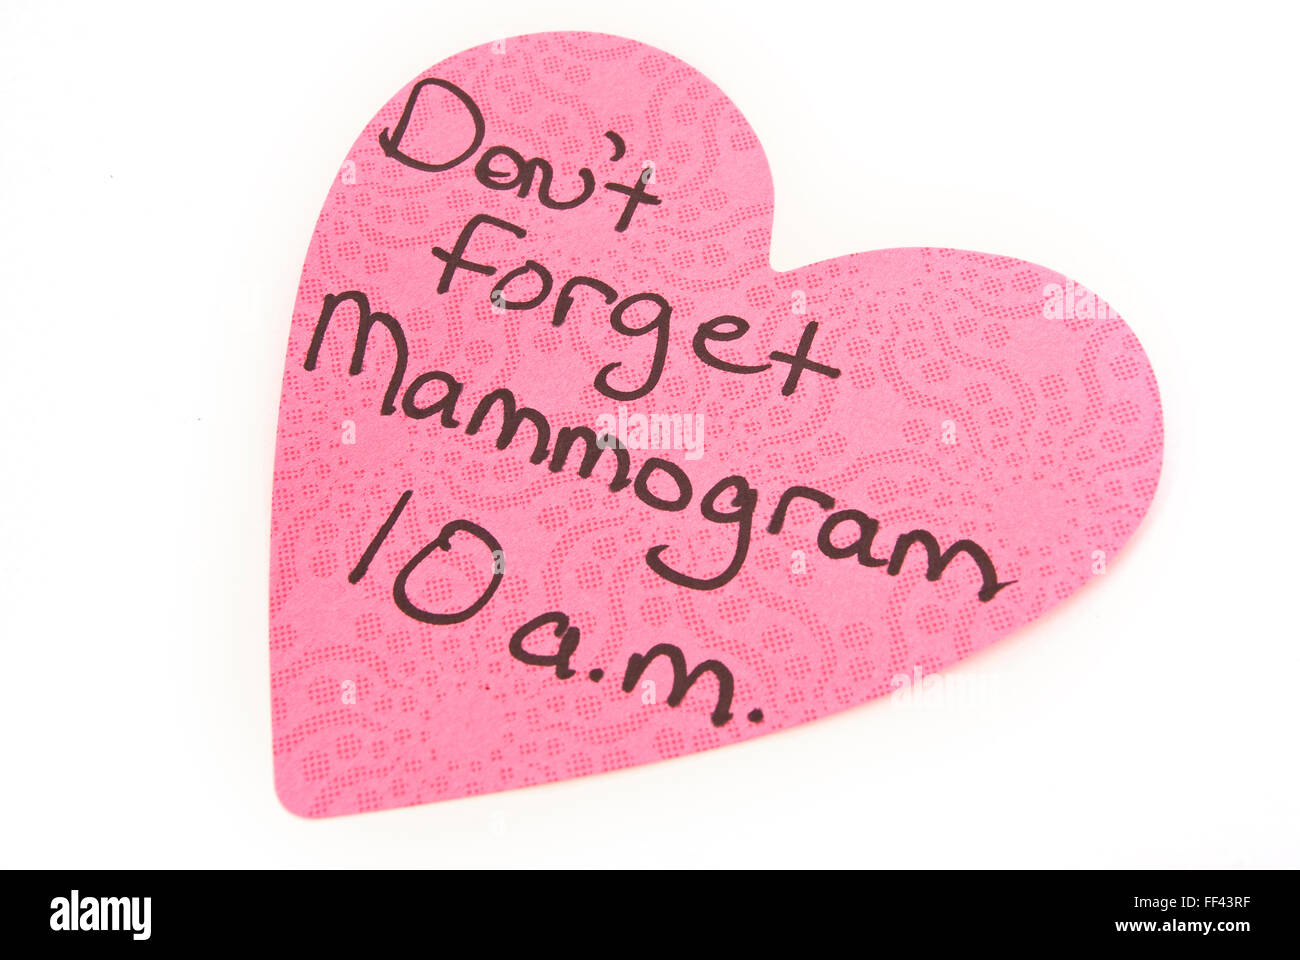 Mammogram Reminder - Stock Image